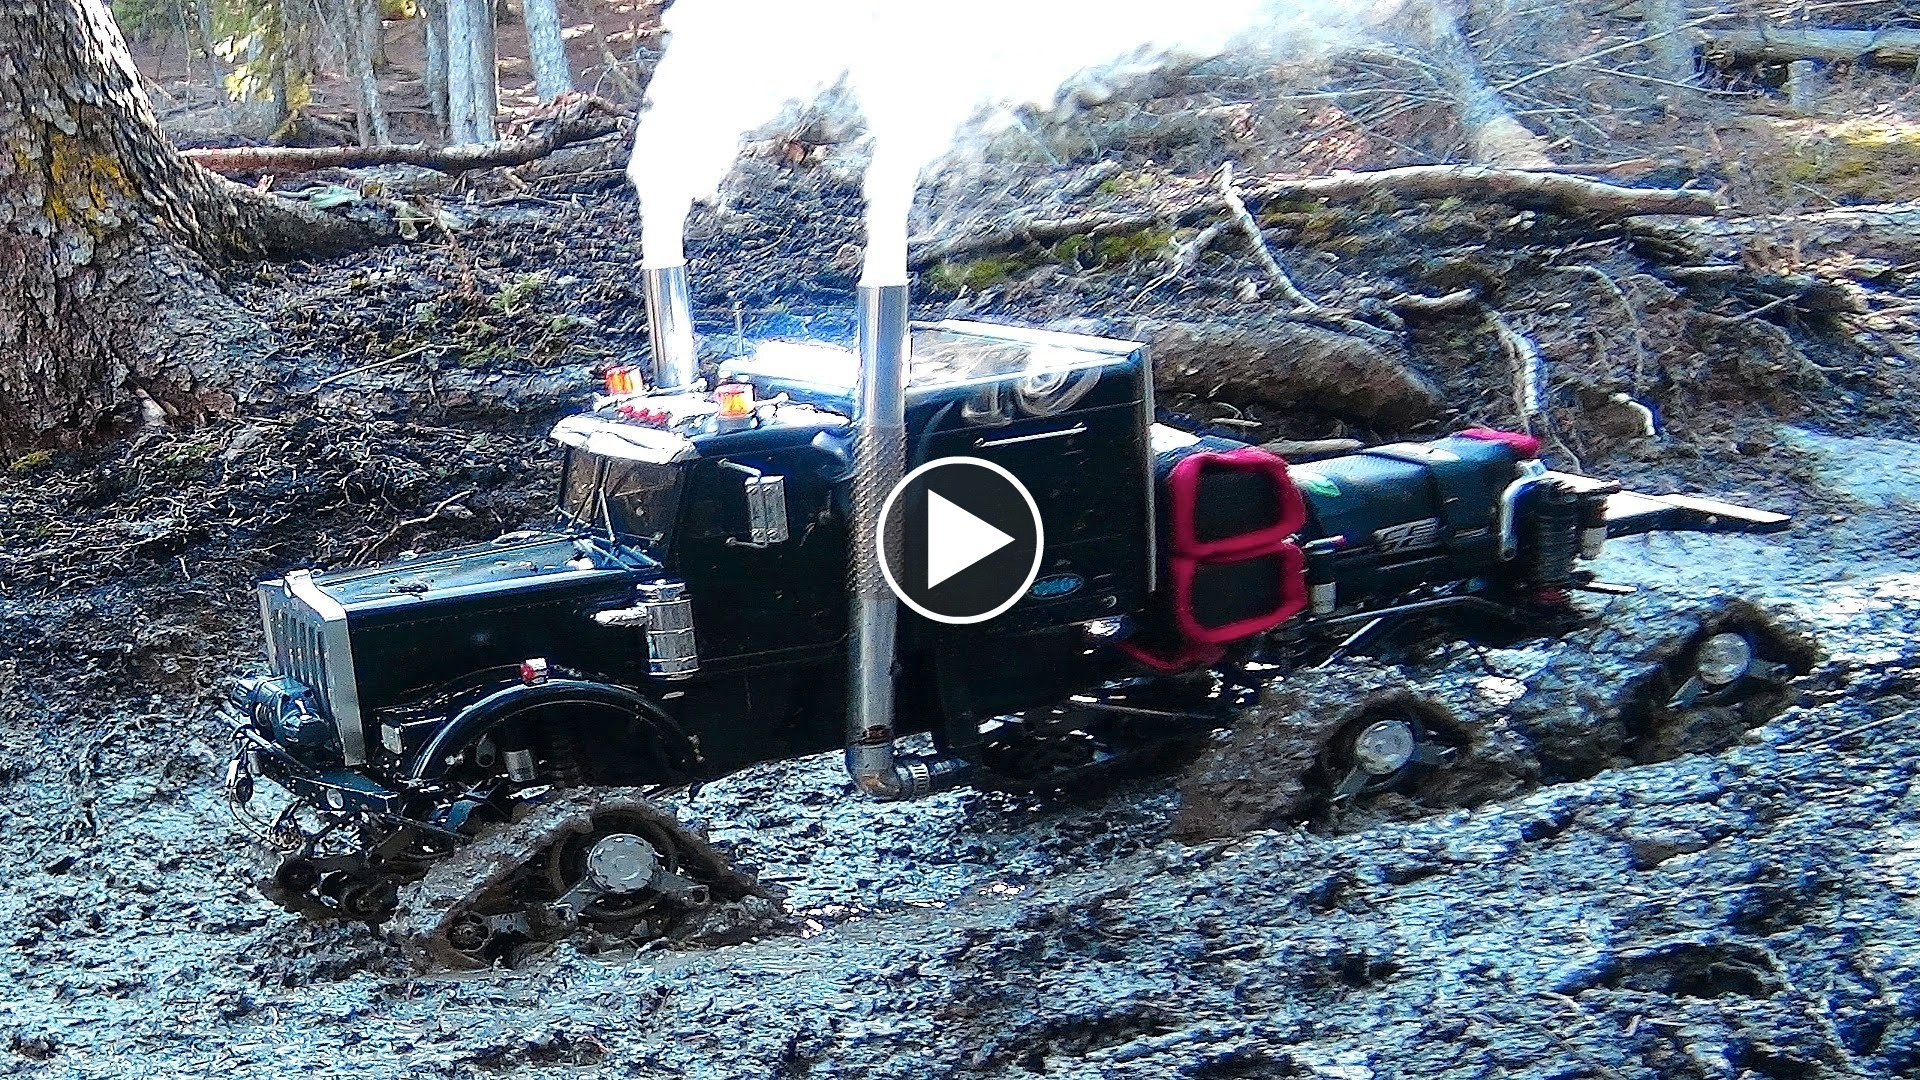 4x4 remote control cars for sale with Mud Bog Monster Truck Rc 4x4 Semi Truck Off Road Beast Smaller Dog on Ford Ranger 2 2 Double Cab Hi Rider Xl Auto 2018 Id 4274659 furthermore 2403381 1985 Toyota Cressida For Sale besides 10809 1989 Toyota Truck 4x4 Ext Cab 5 Speed Manual Transmission Light Blue Metallic additionally Kids Battery Operated Maserati Style Ride On Car besides Color Yellow.